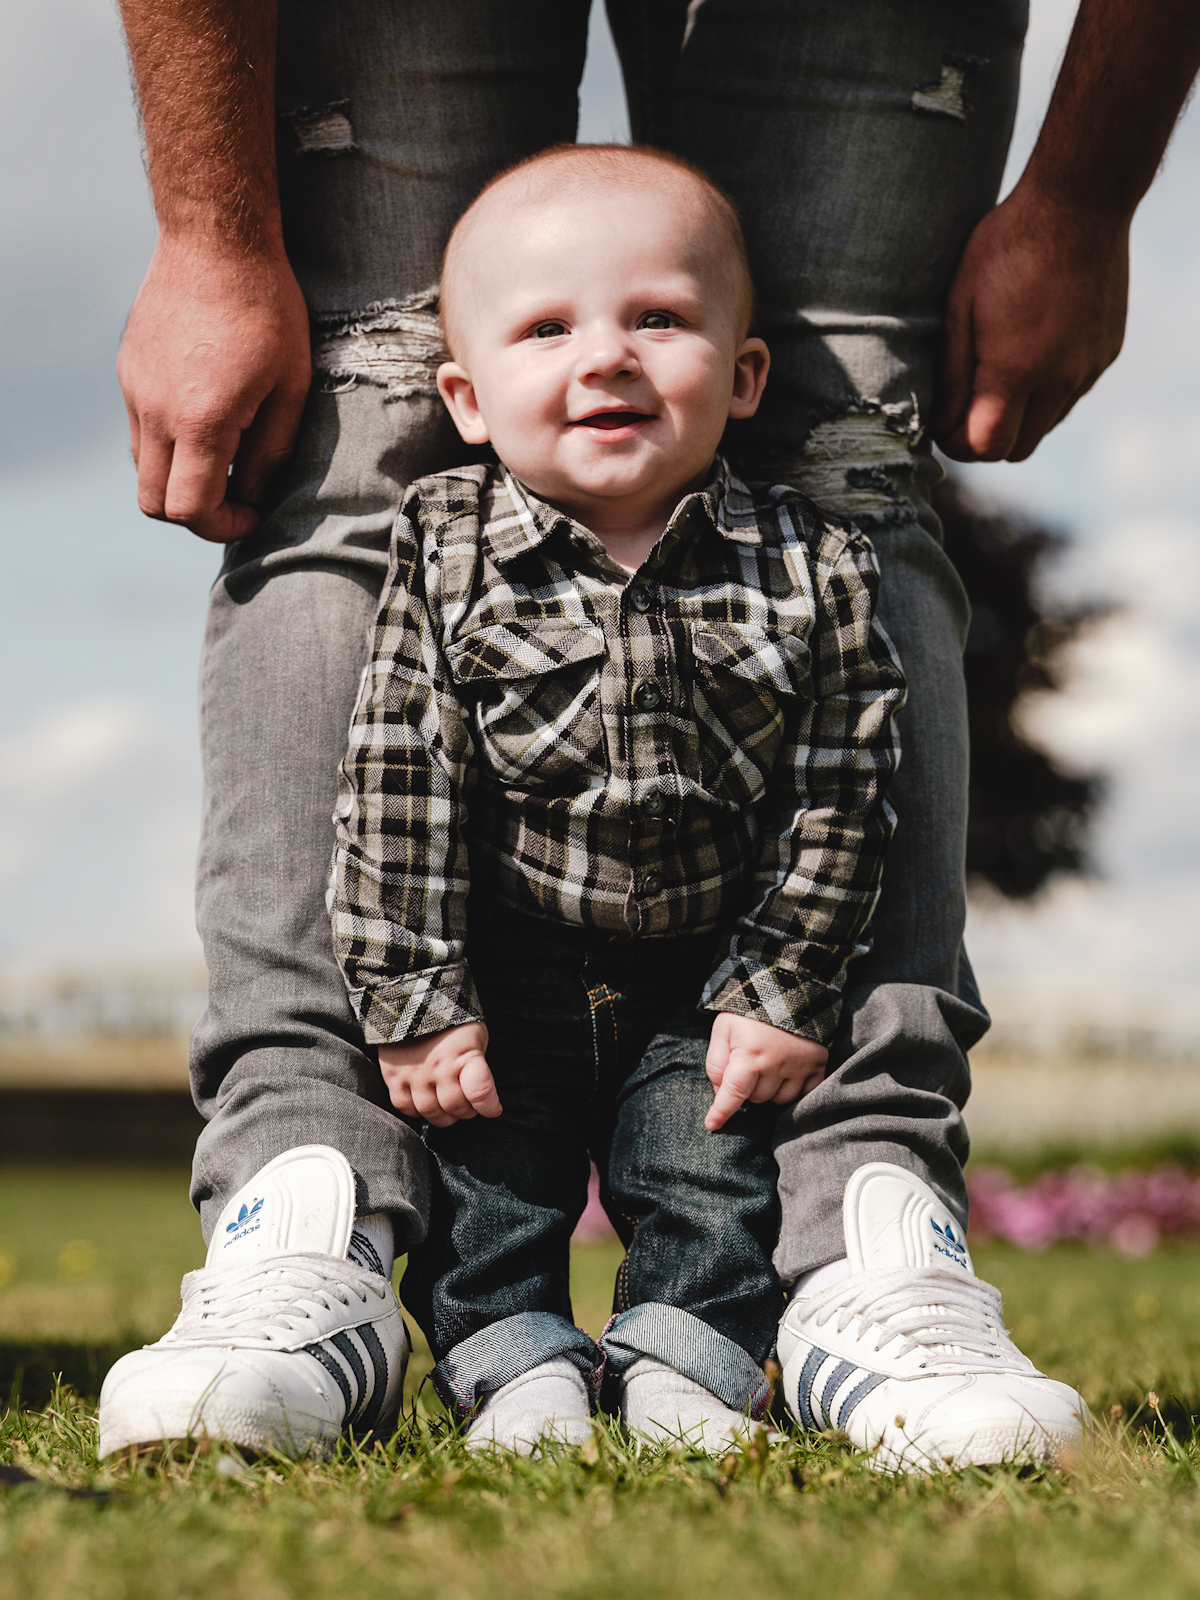 Young child is leaning against his father's legs for a photo